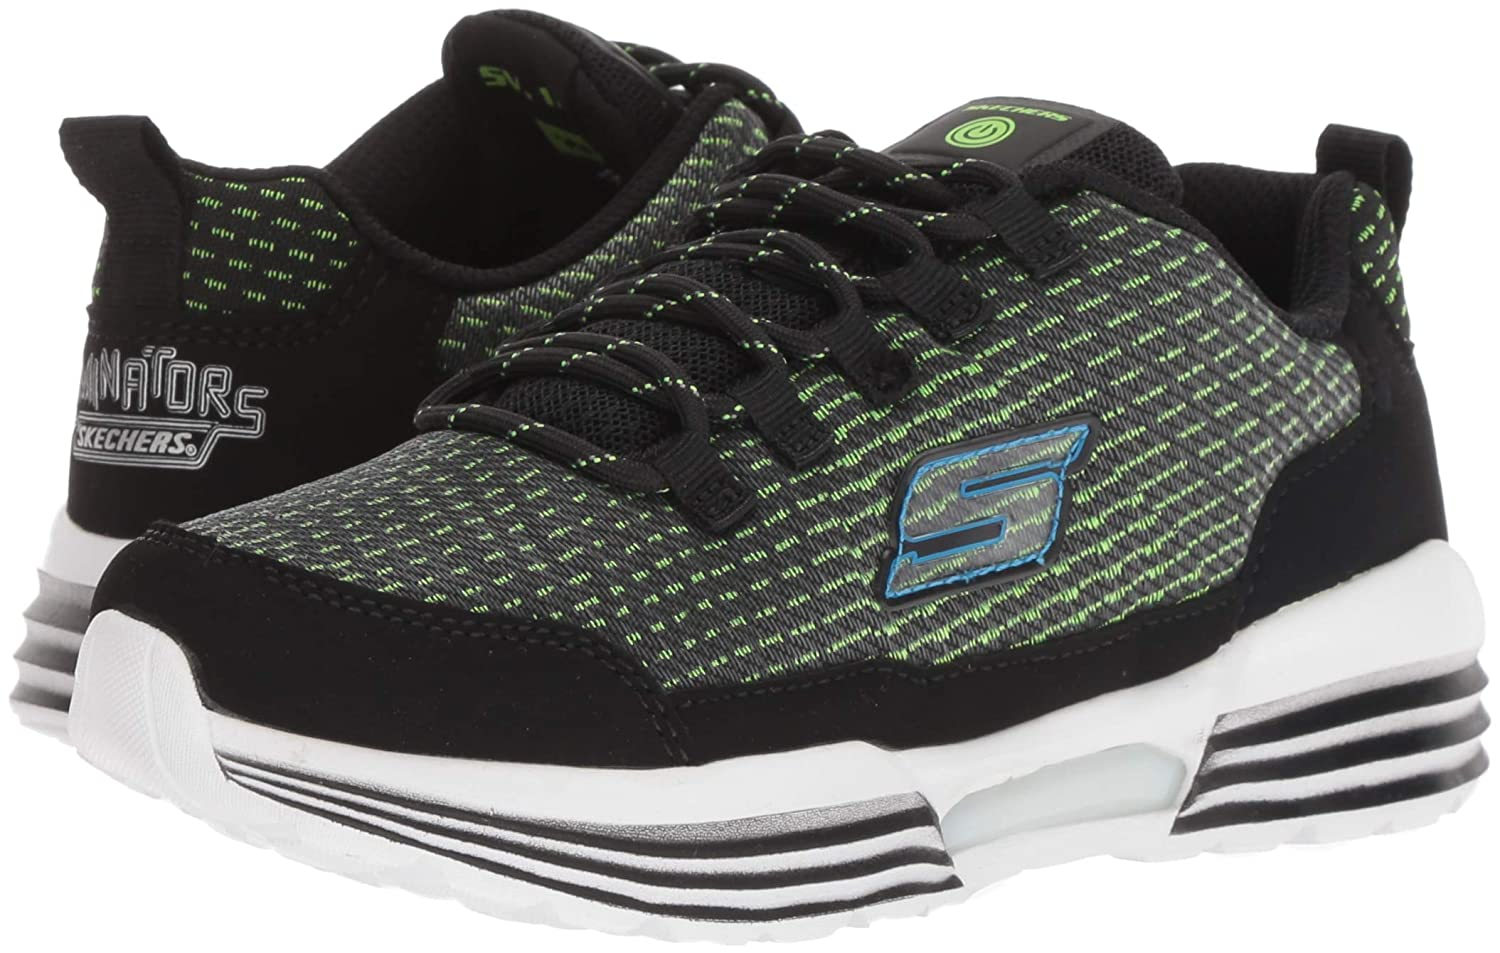 Skechers Gar 2 flash Hypno on 0Rapid 0w8vmNn